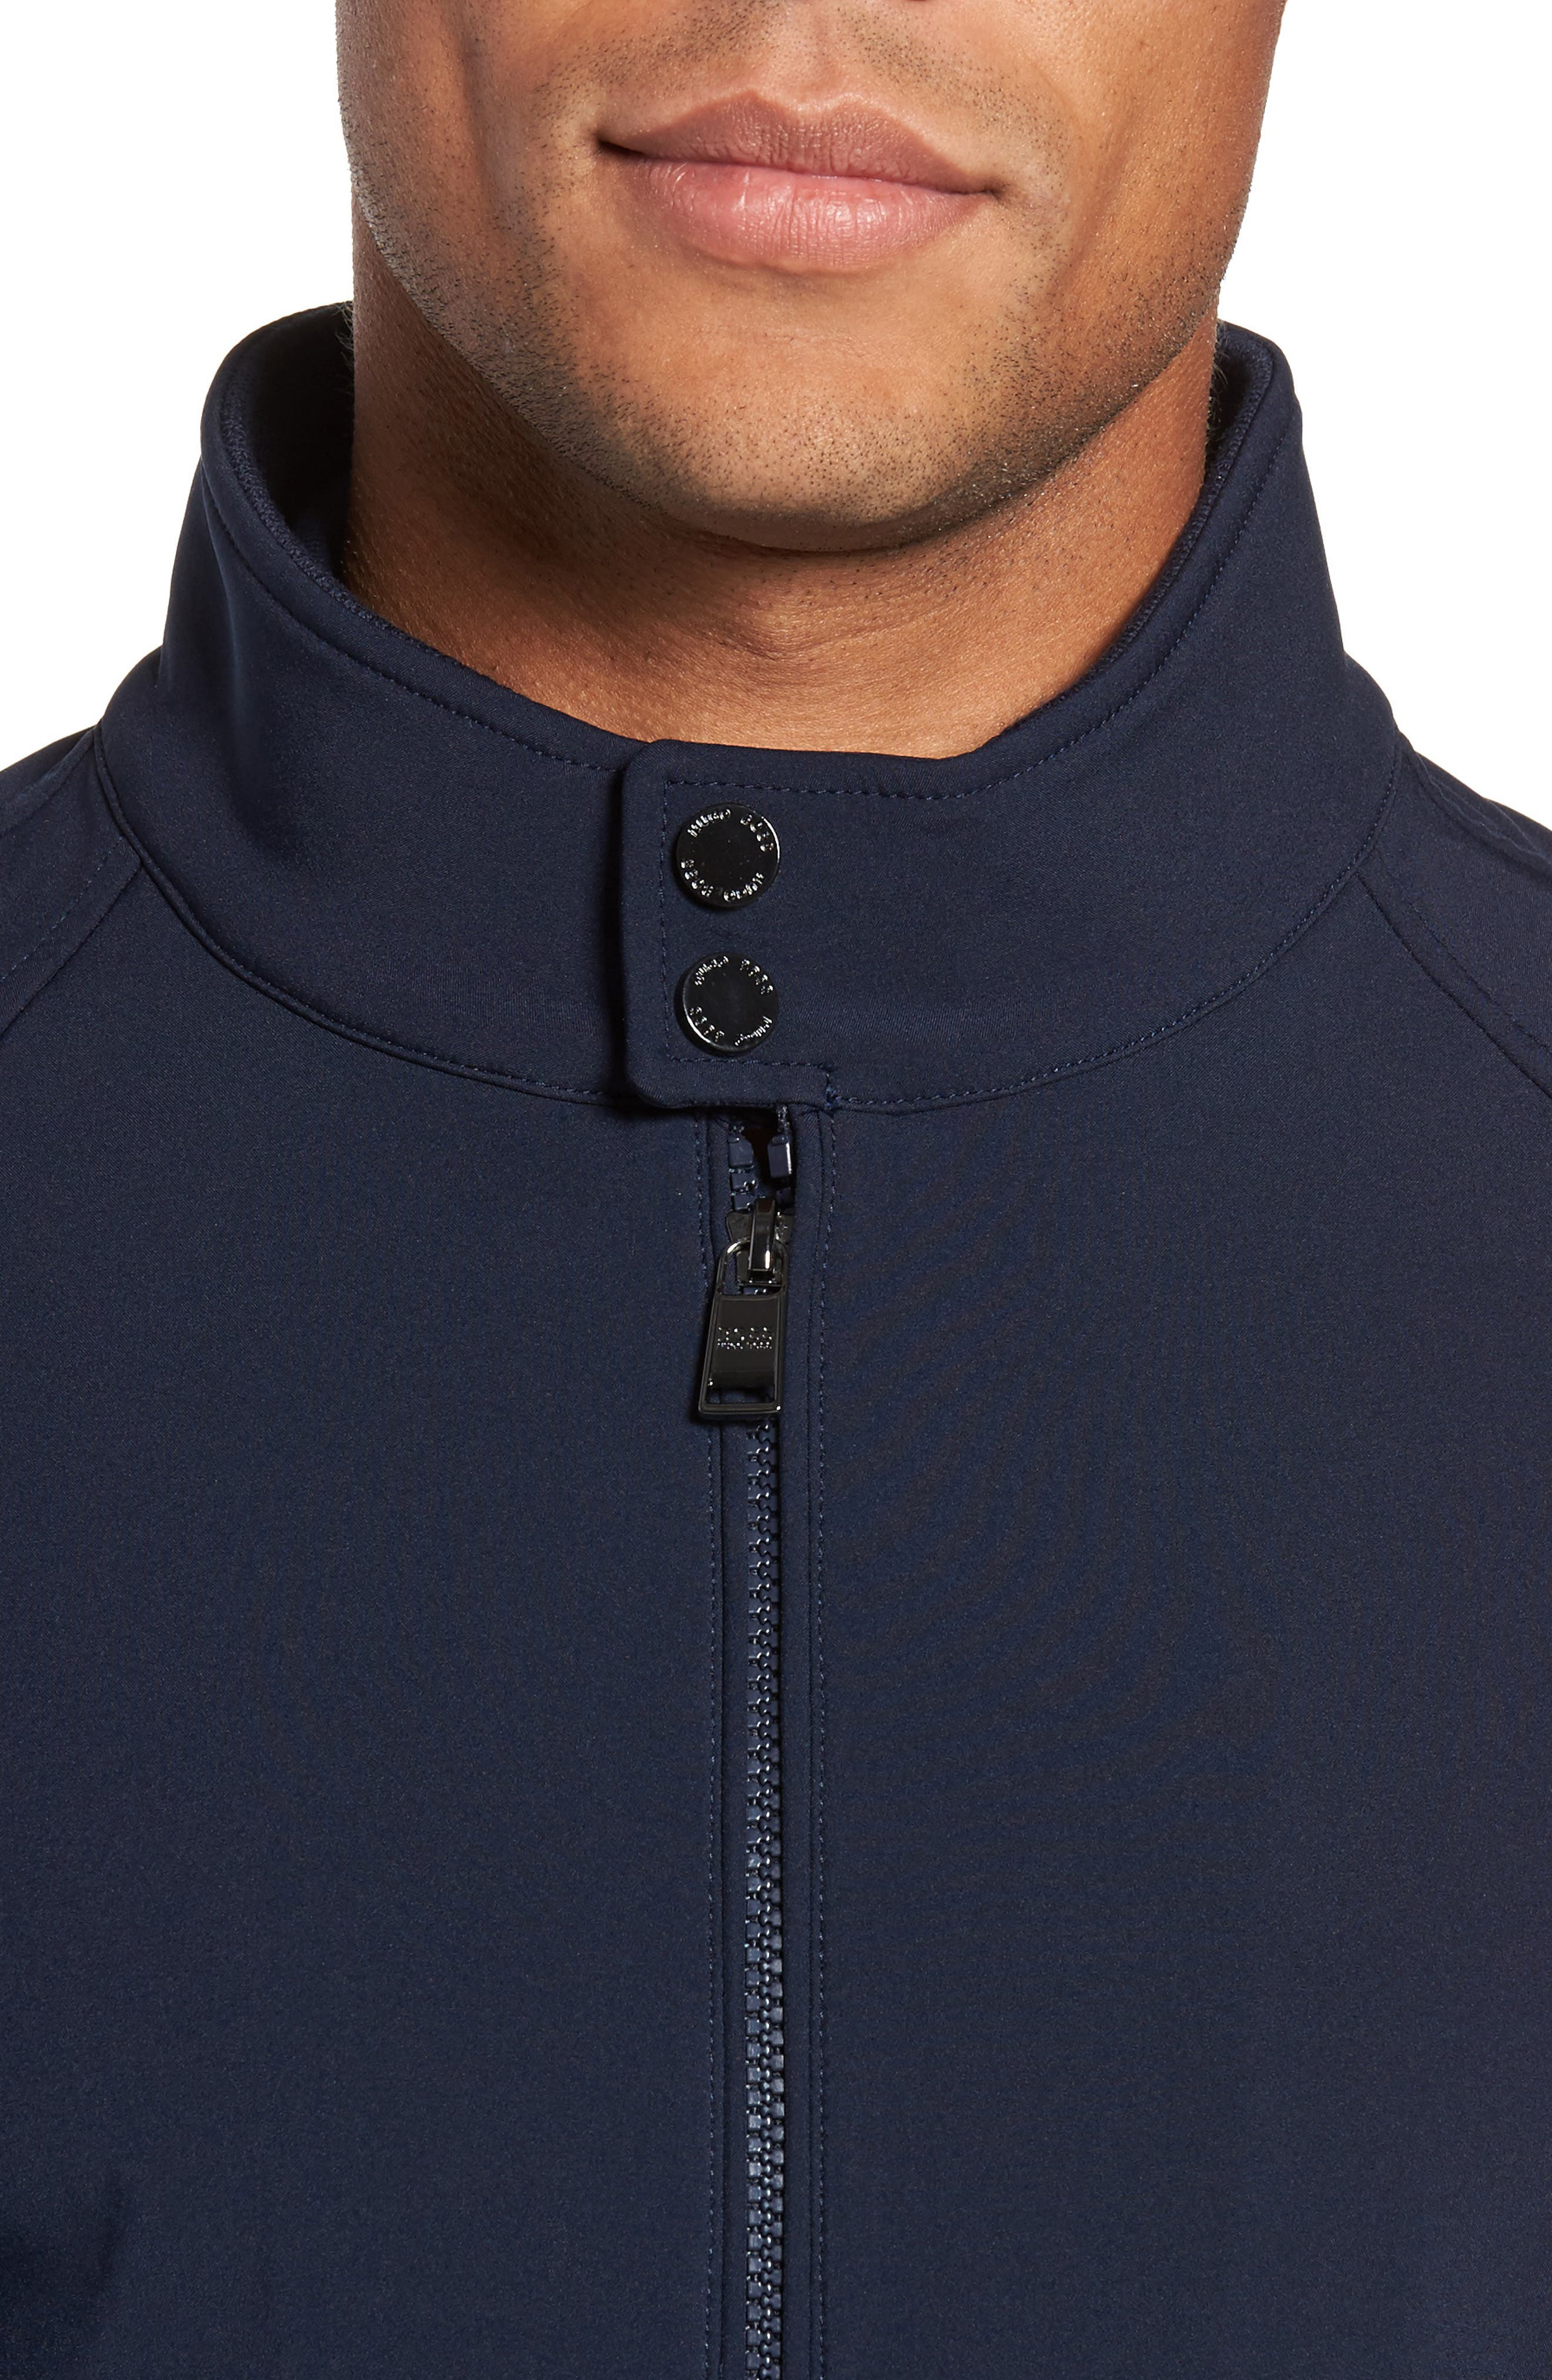 Corva Technical Jacket,                             Alternate thumbnail 4, color,                             Navy